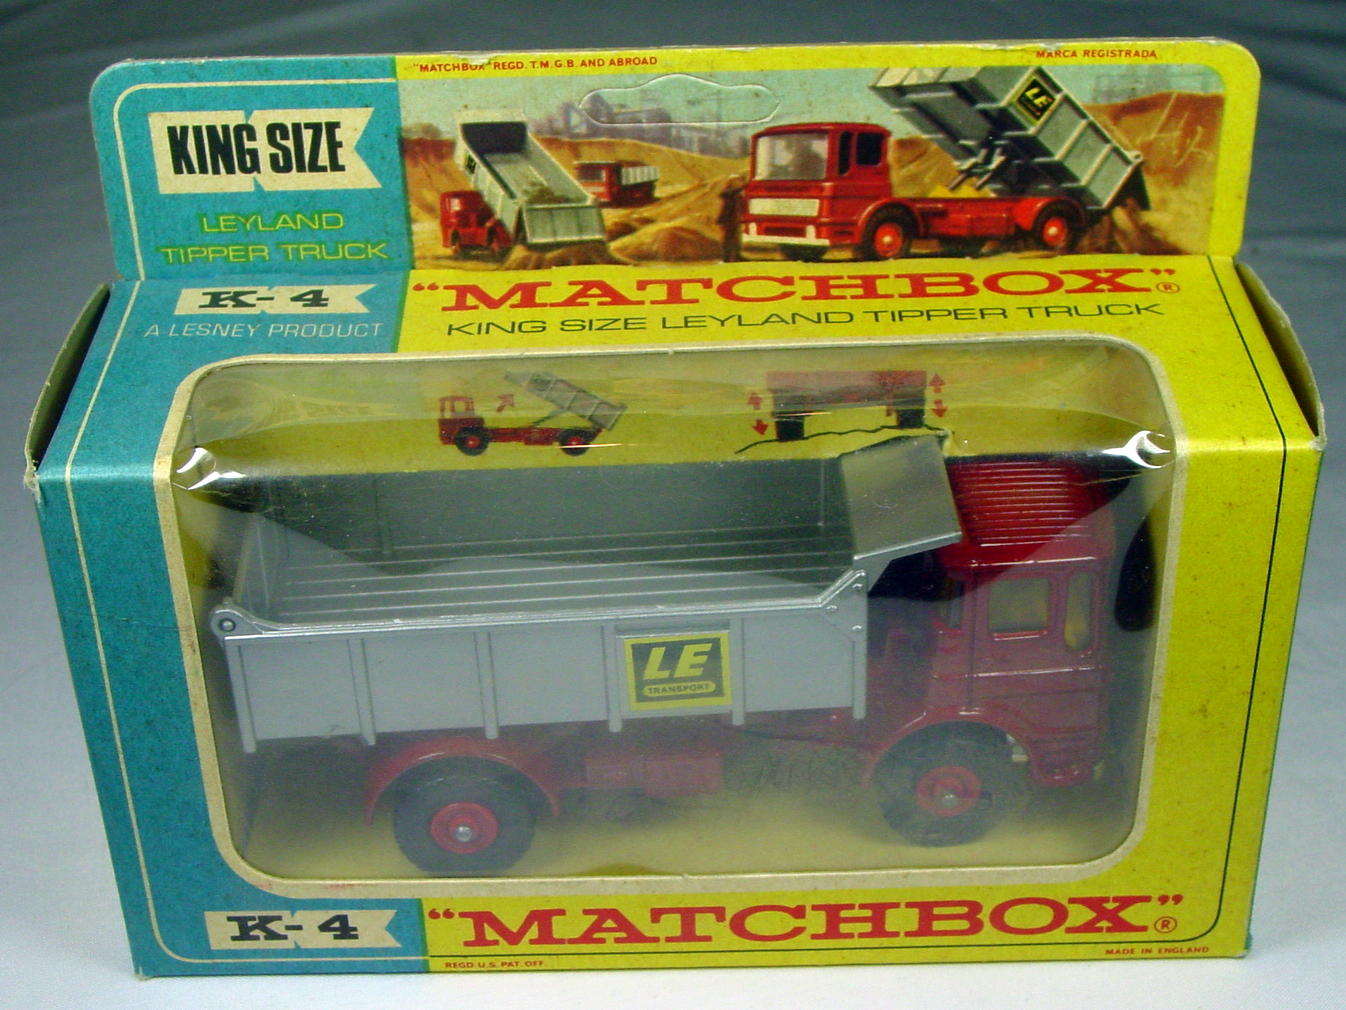 King Size 04 C 1 - Leyland Tip Red and silver LE Transport C9 unp tab box